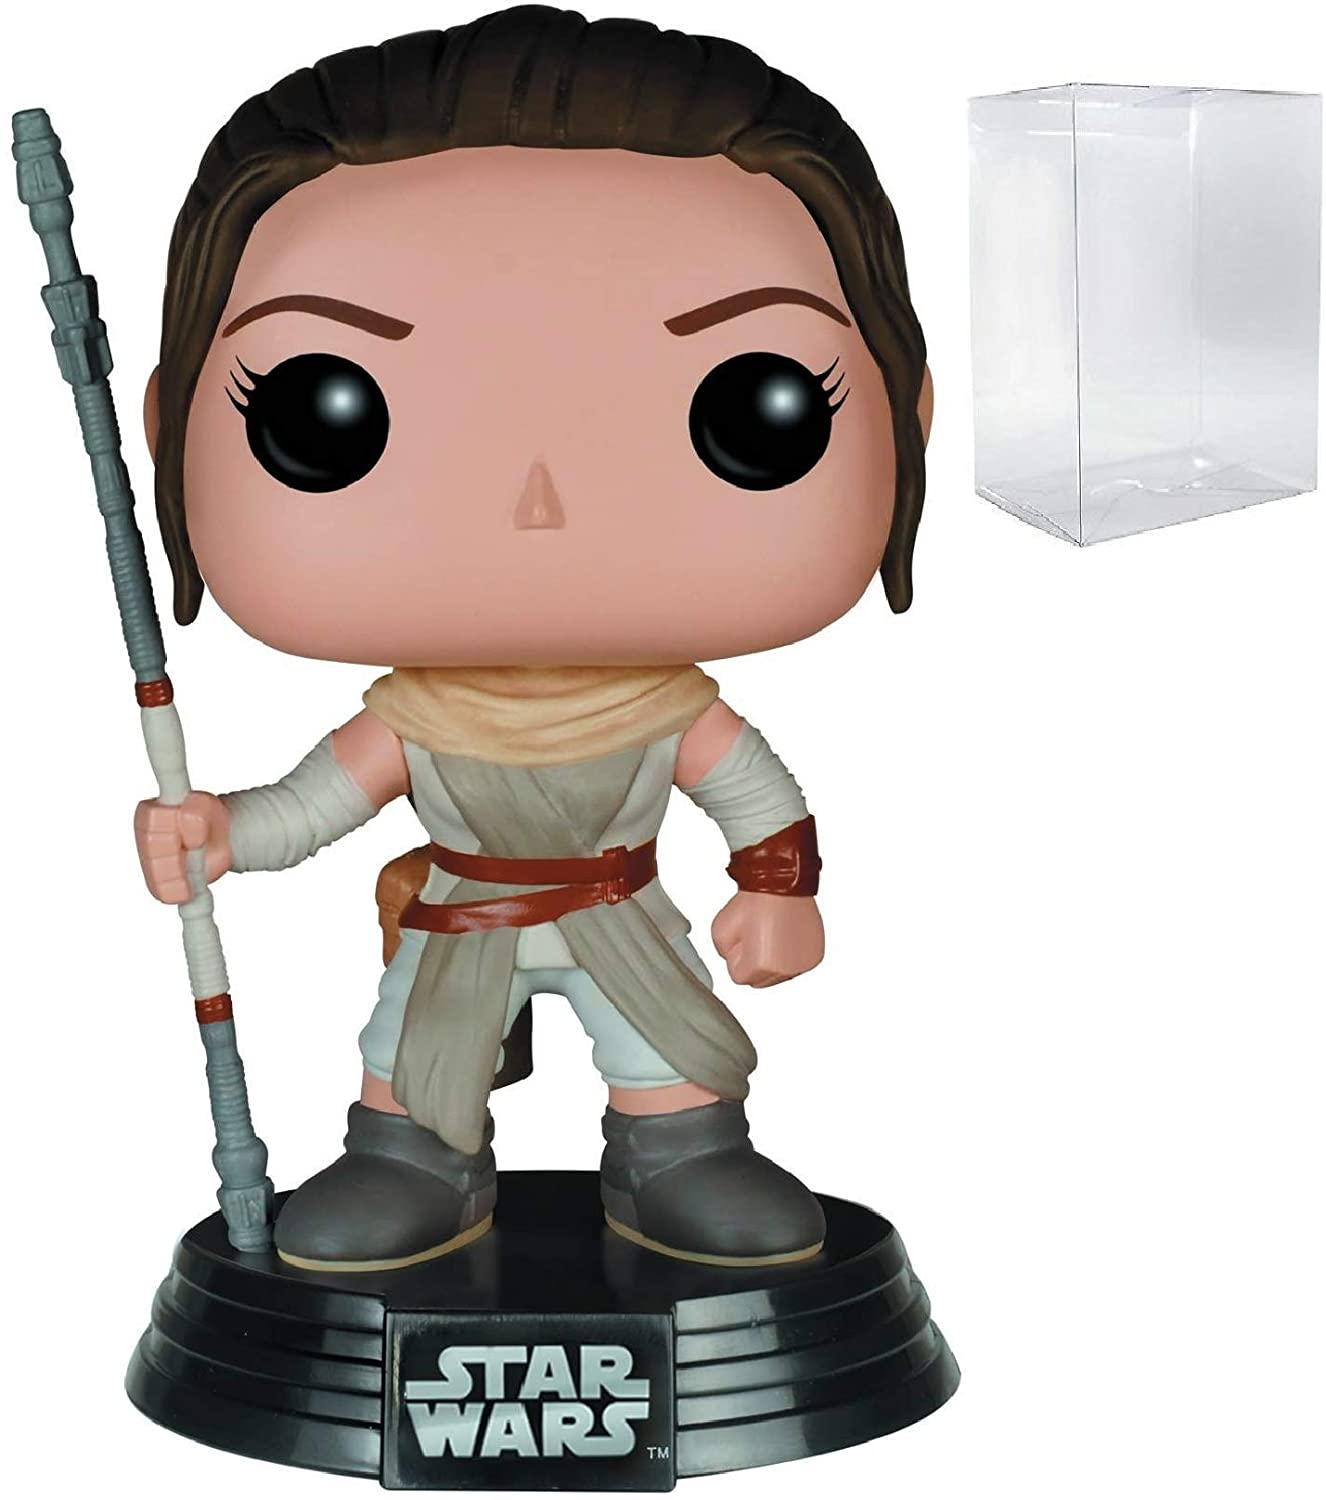 Funko Star Wars: The Force Awakens - Rey Pop! Vinyl Figure (Includes Compatible Pop Box Protector Case)